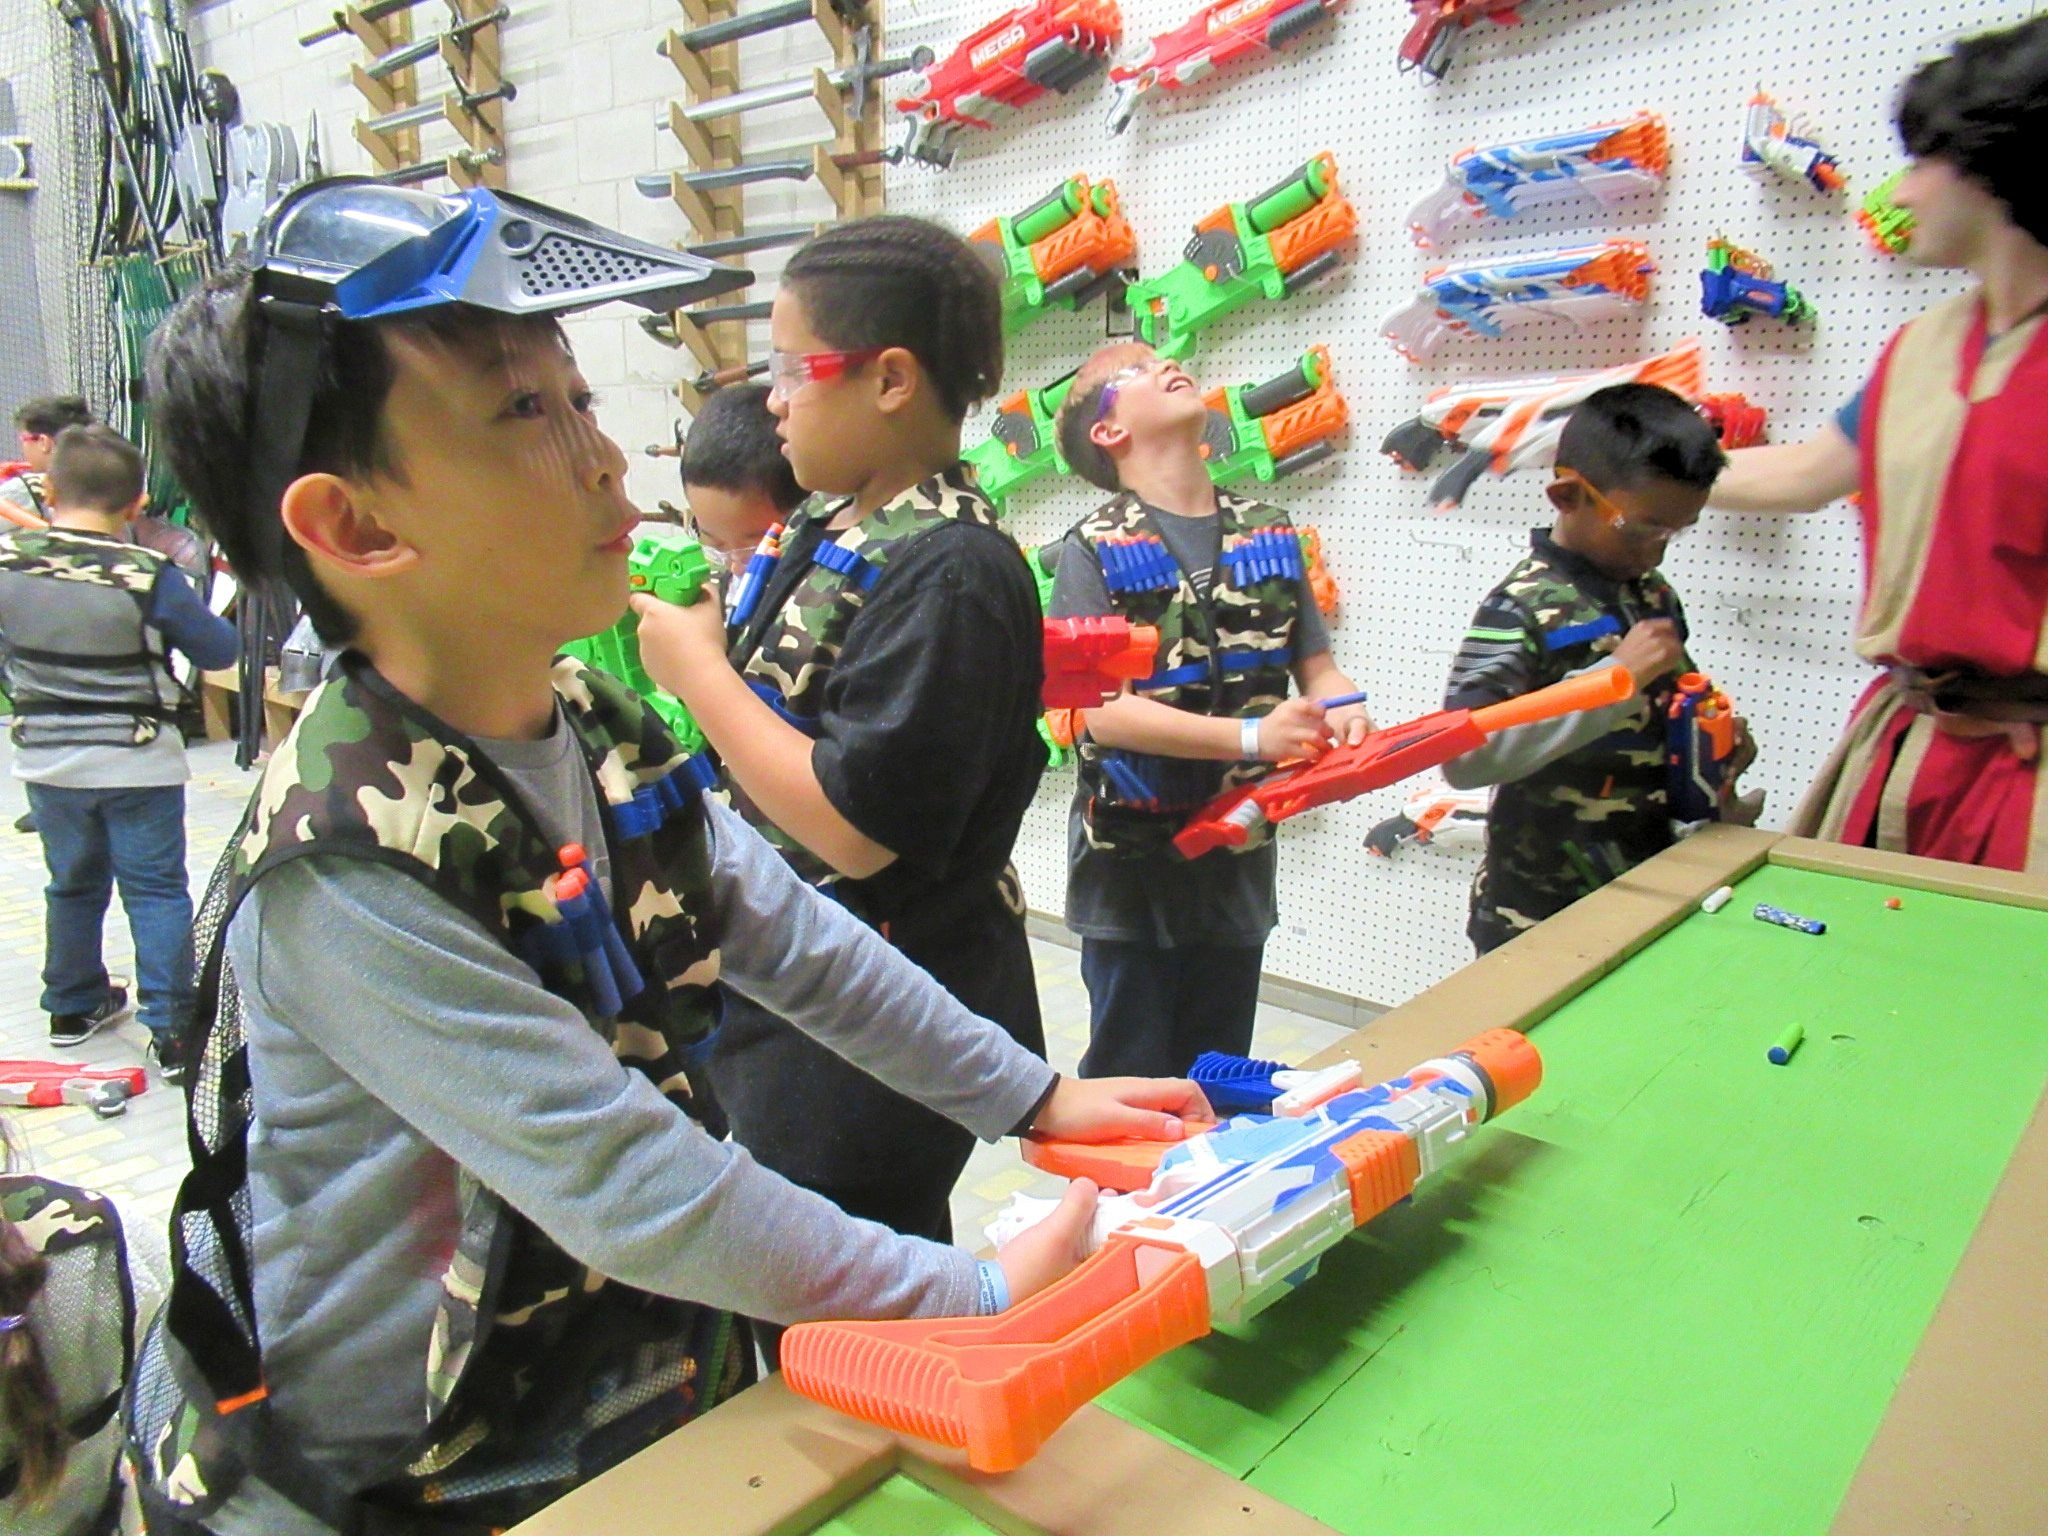 nerf wars private birthday party